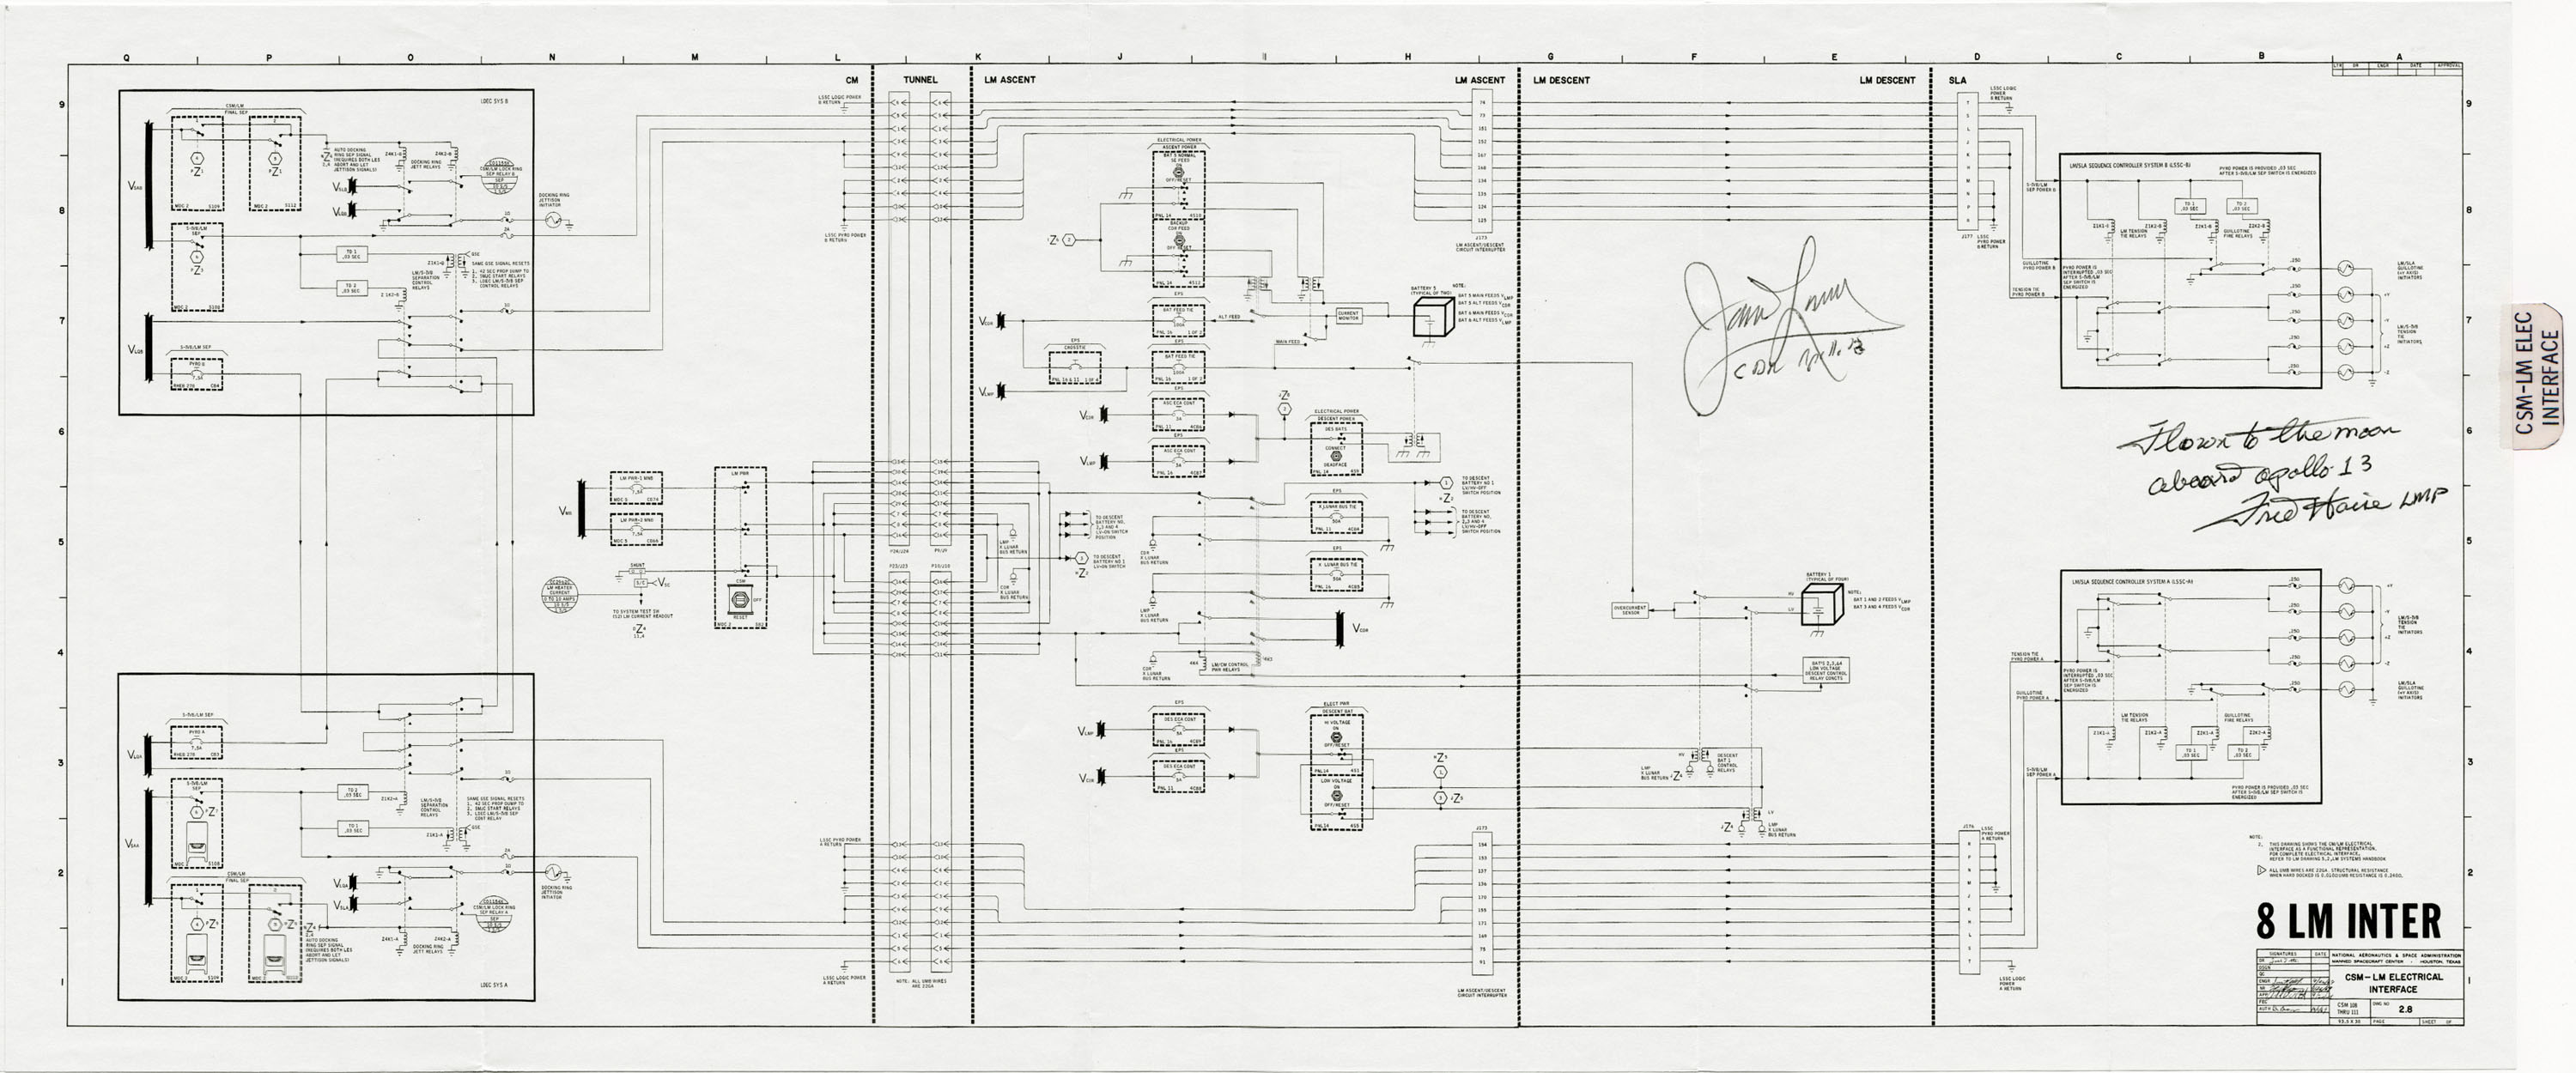 Apollo 13 Flown To The Moon Csm Lm Elec Interface Schematic